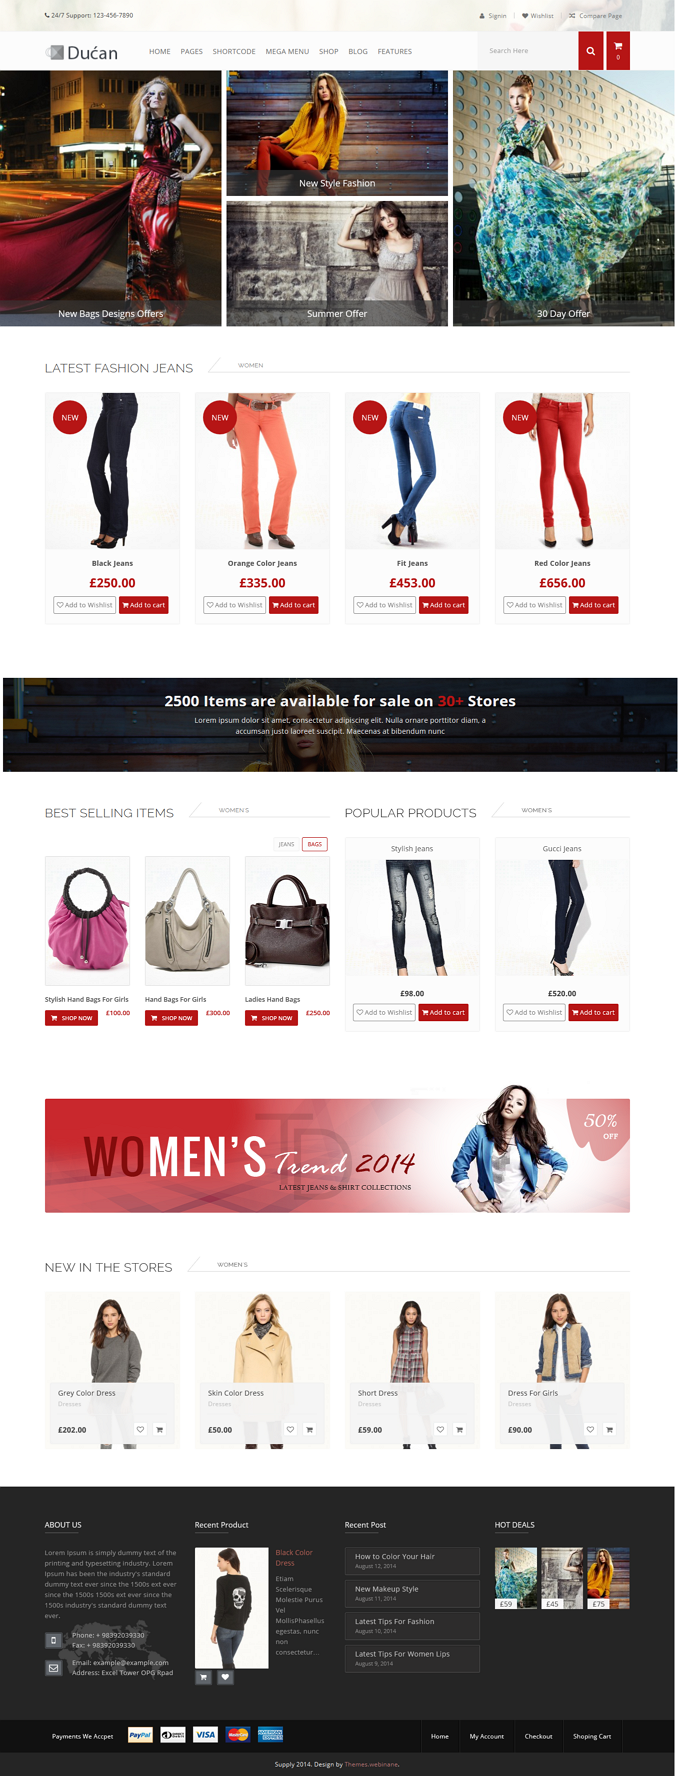 Ducan premium WP eCommerce theme brings you all the advanced and most powerful features that a w ...